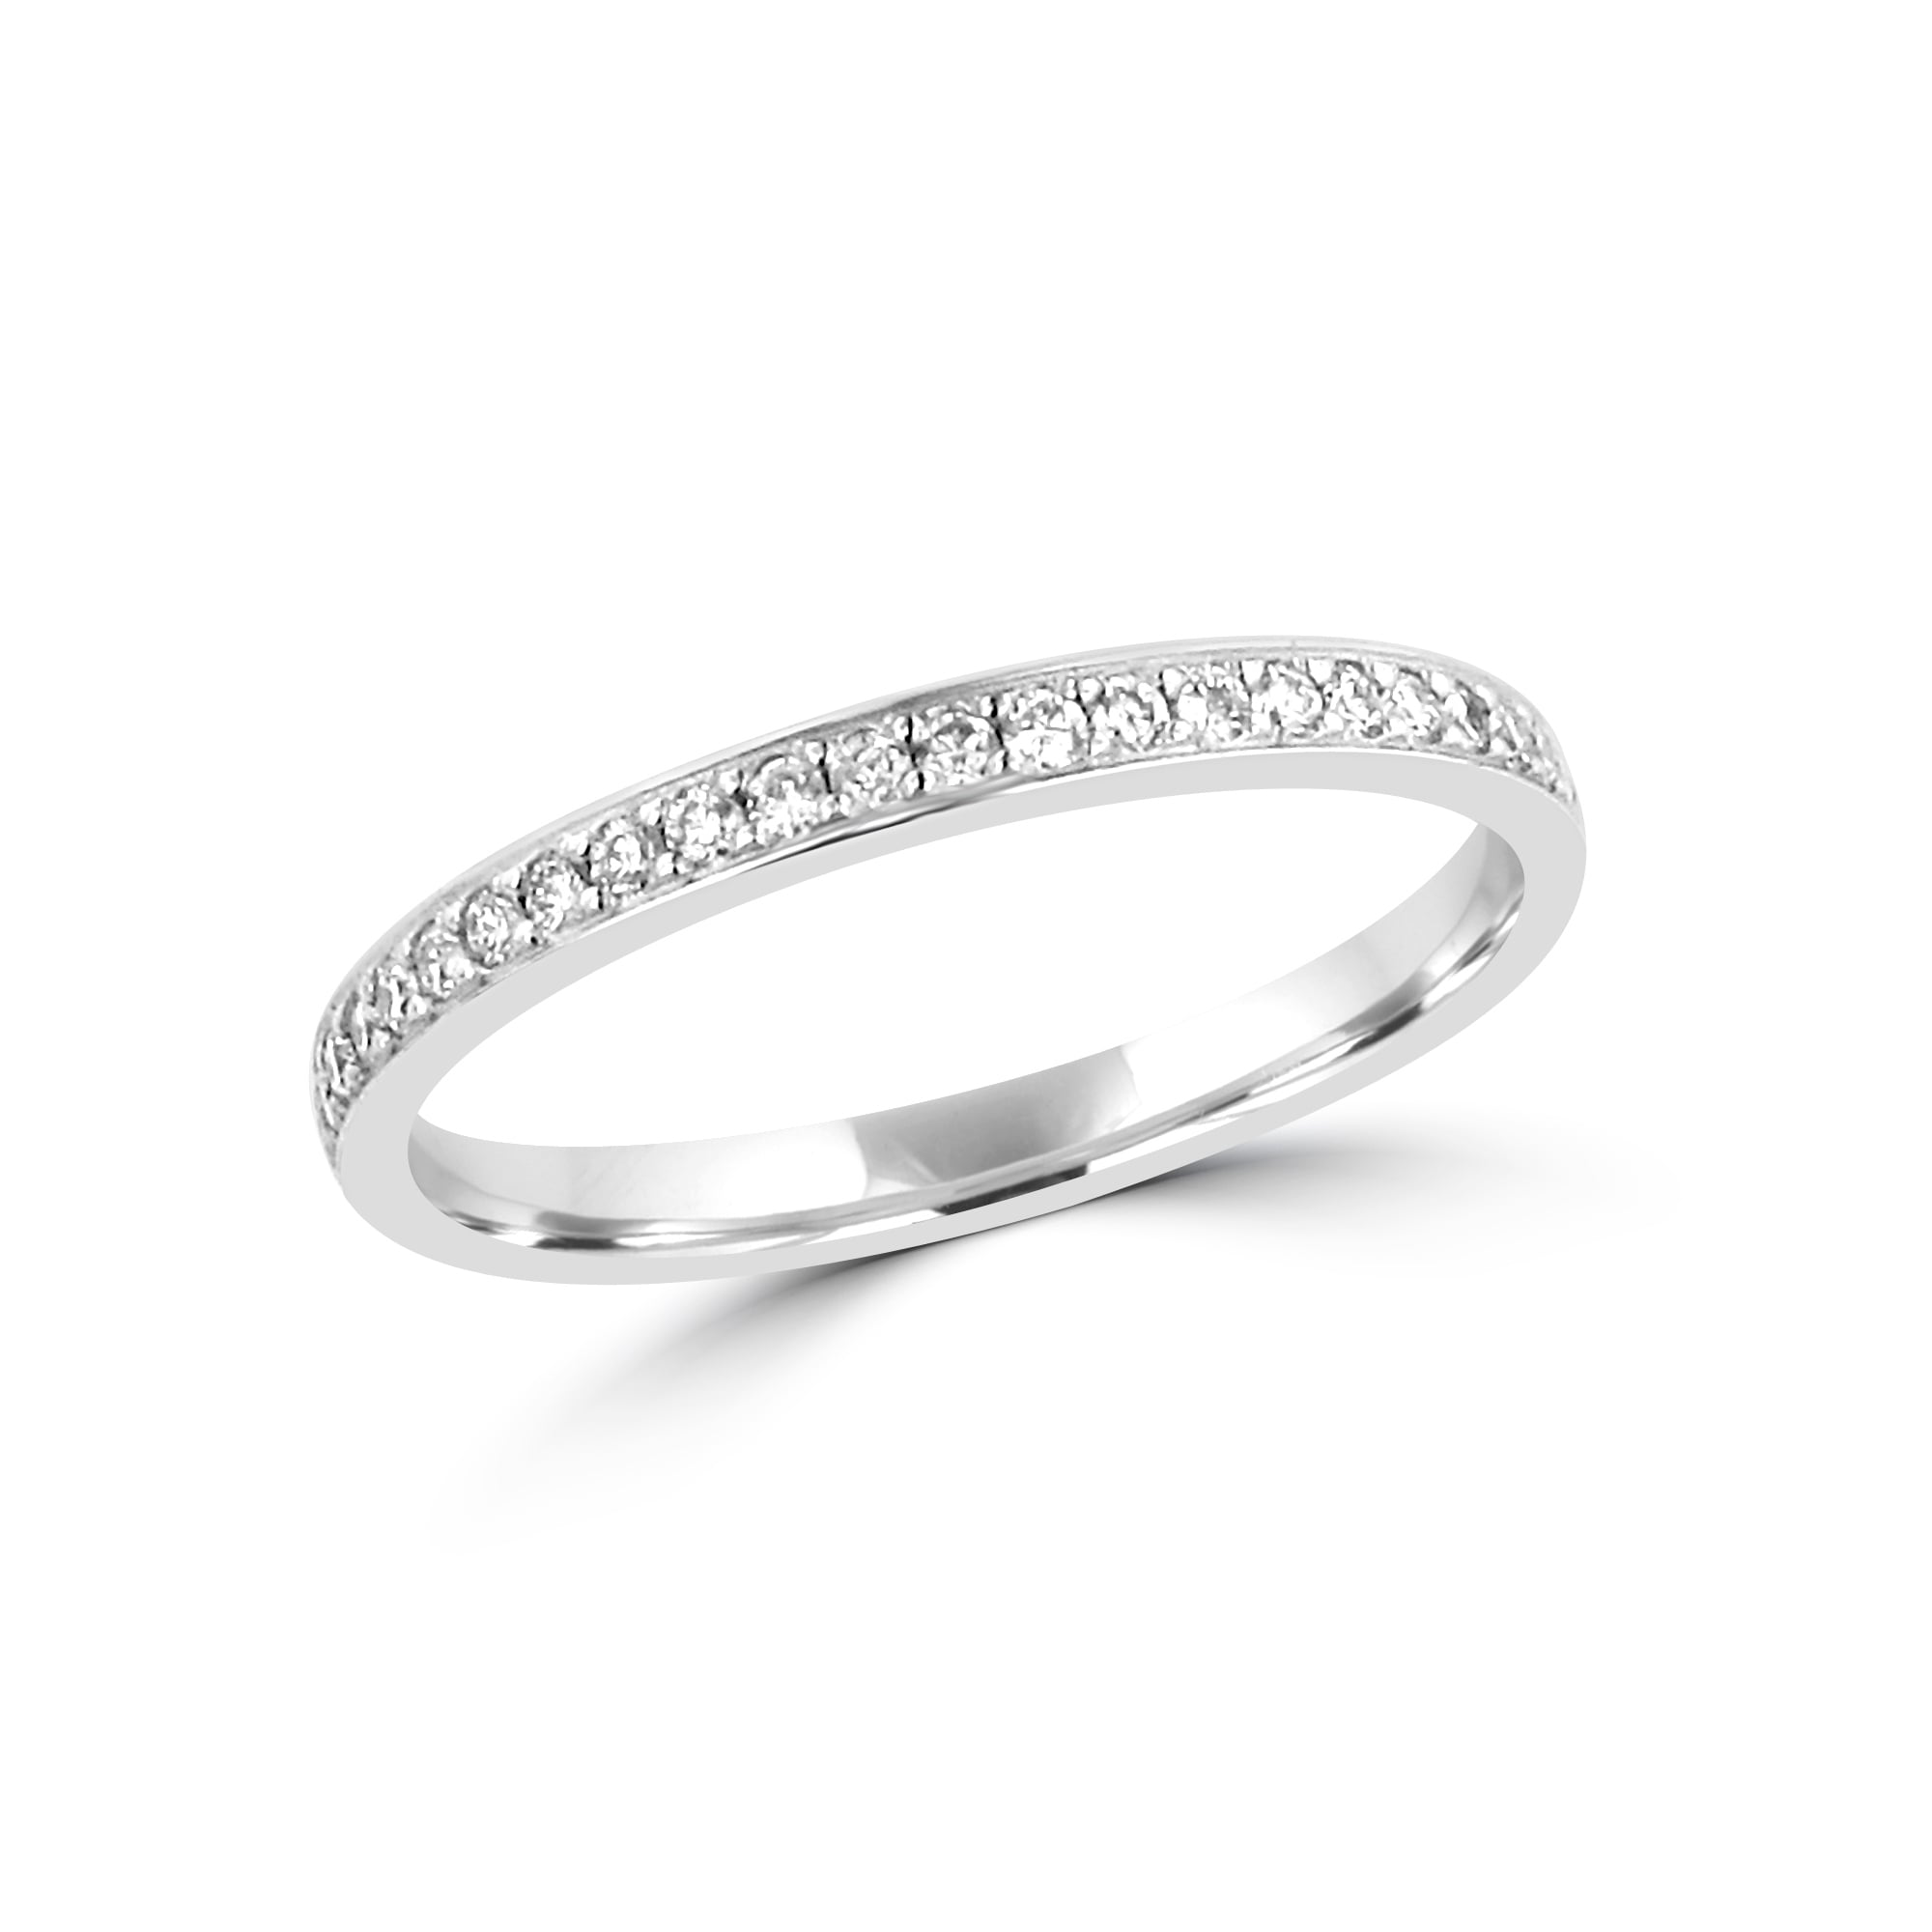 It is a graphic of 43.43mm Wide Round Diamond Platinum grain Set Vintage Inspired Wedding Ring